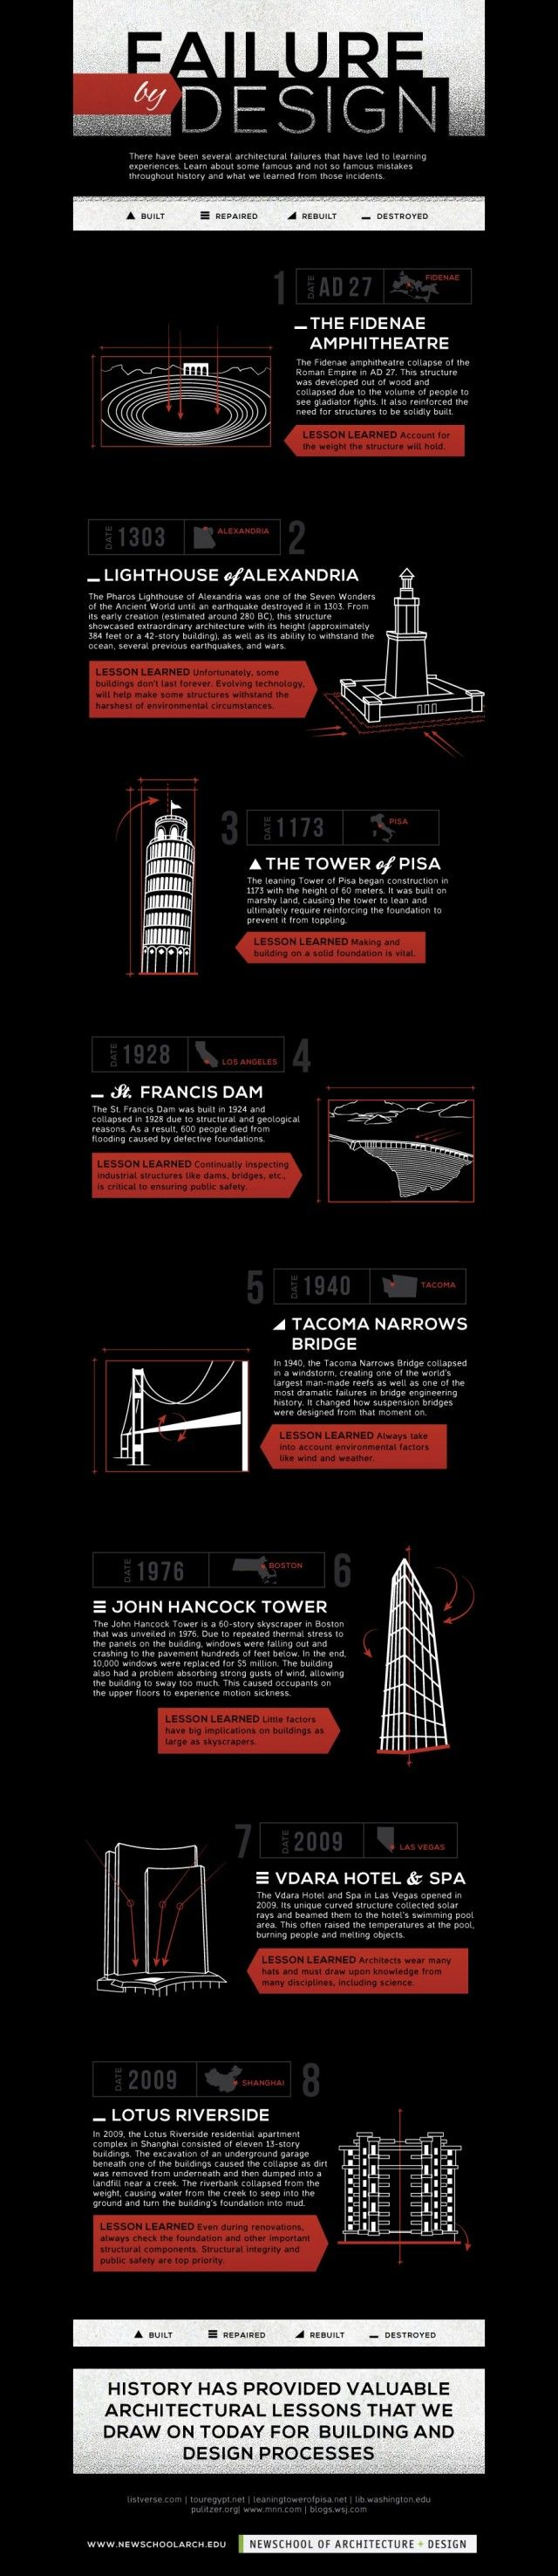 Failure By Design: Famous Architectural Mistakes [Infographic]